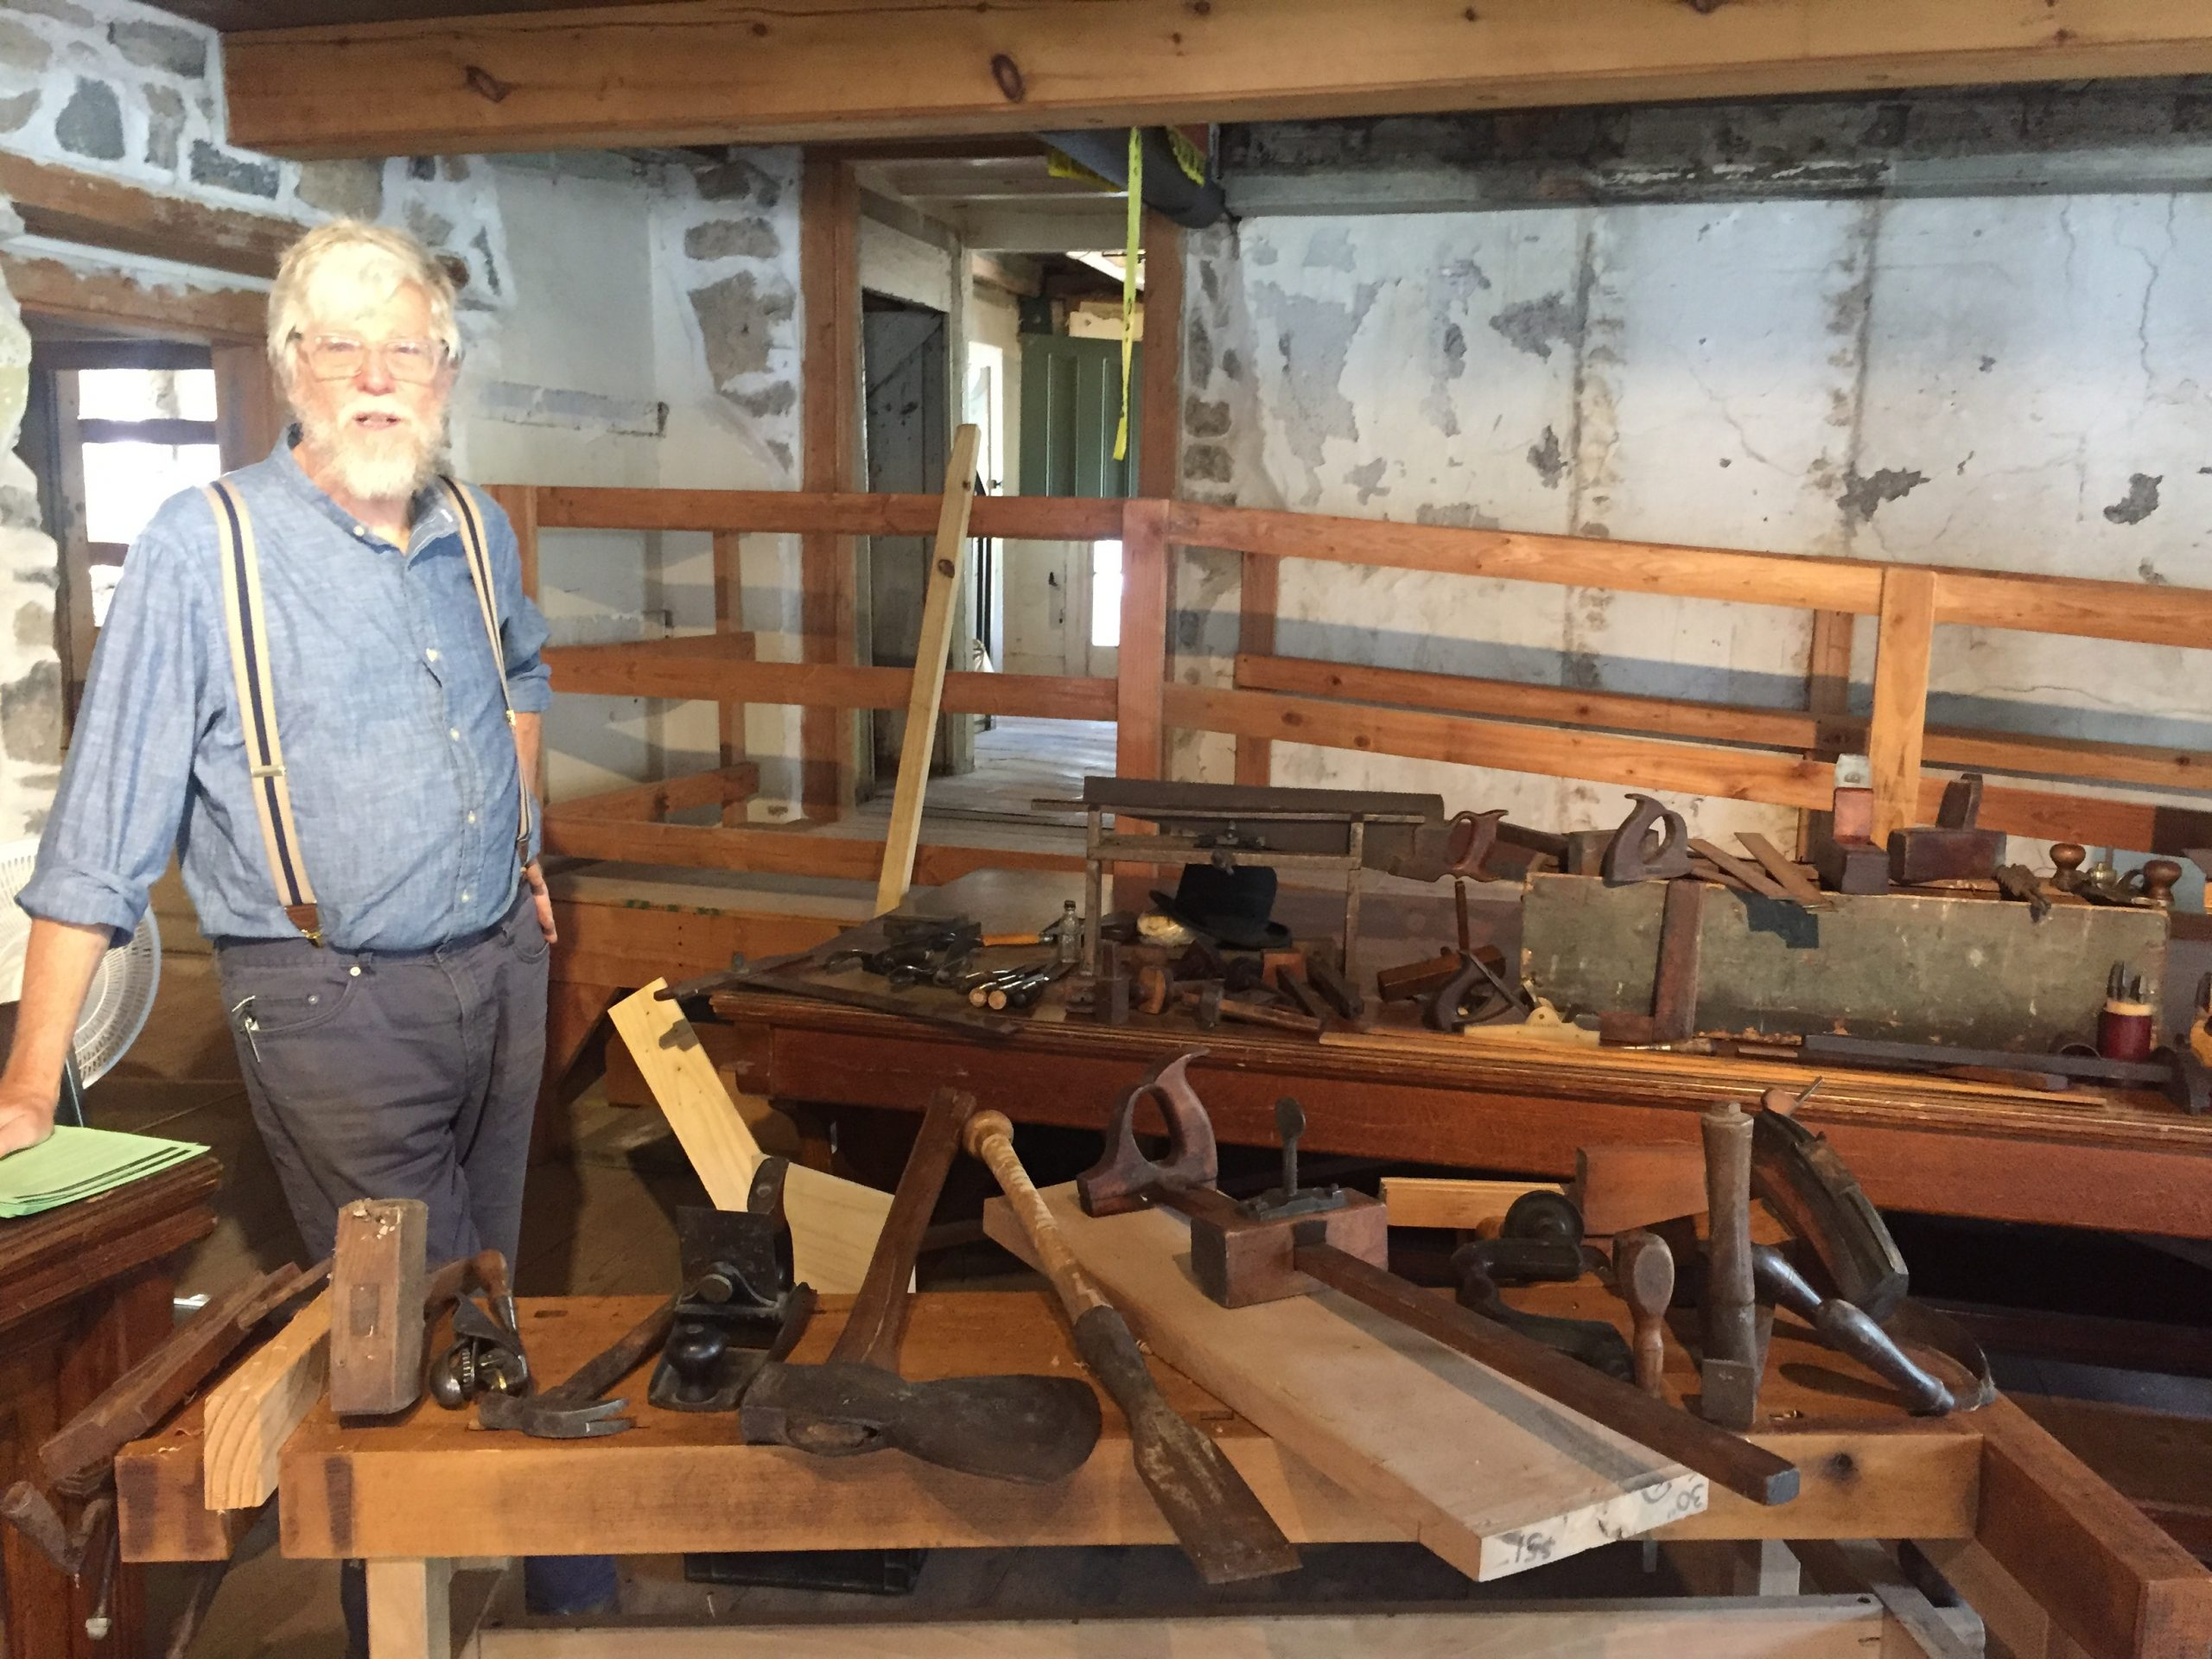 County Clerk » D&H Canal Historical Society at the Persen House